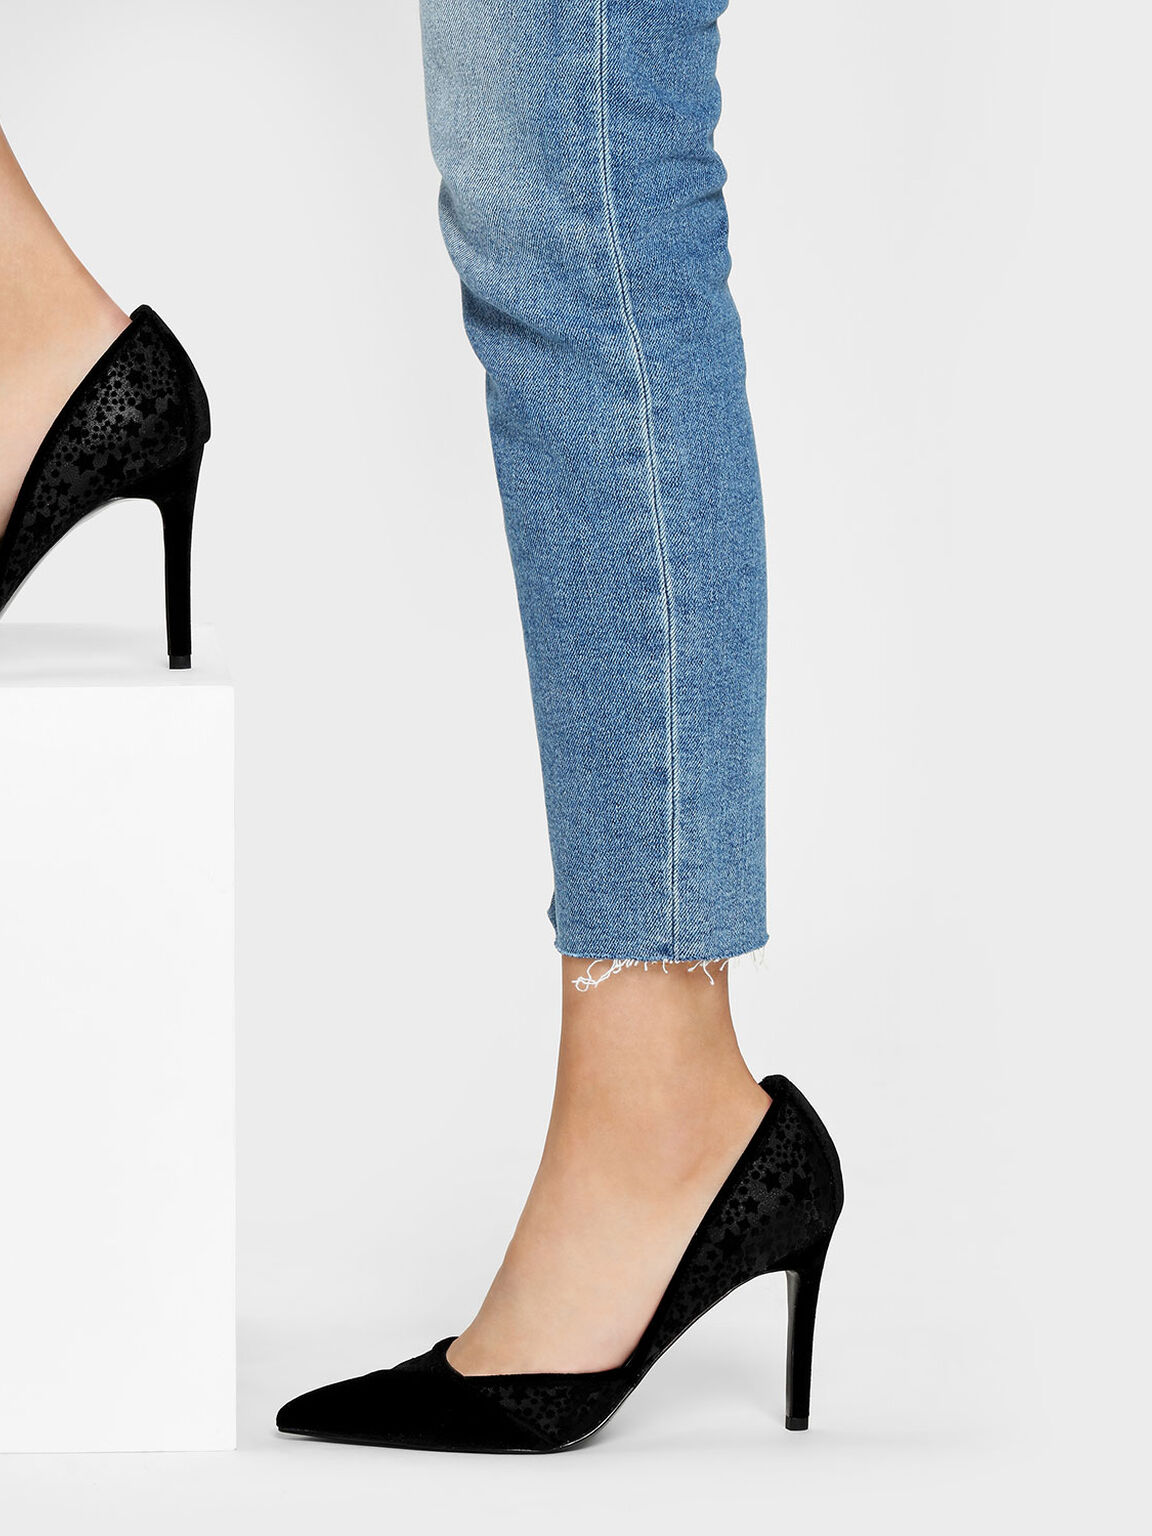 Velvet Flocking Pointed Pumps, Black, hi-res